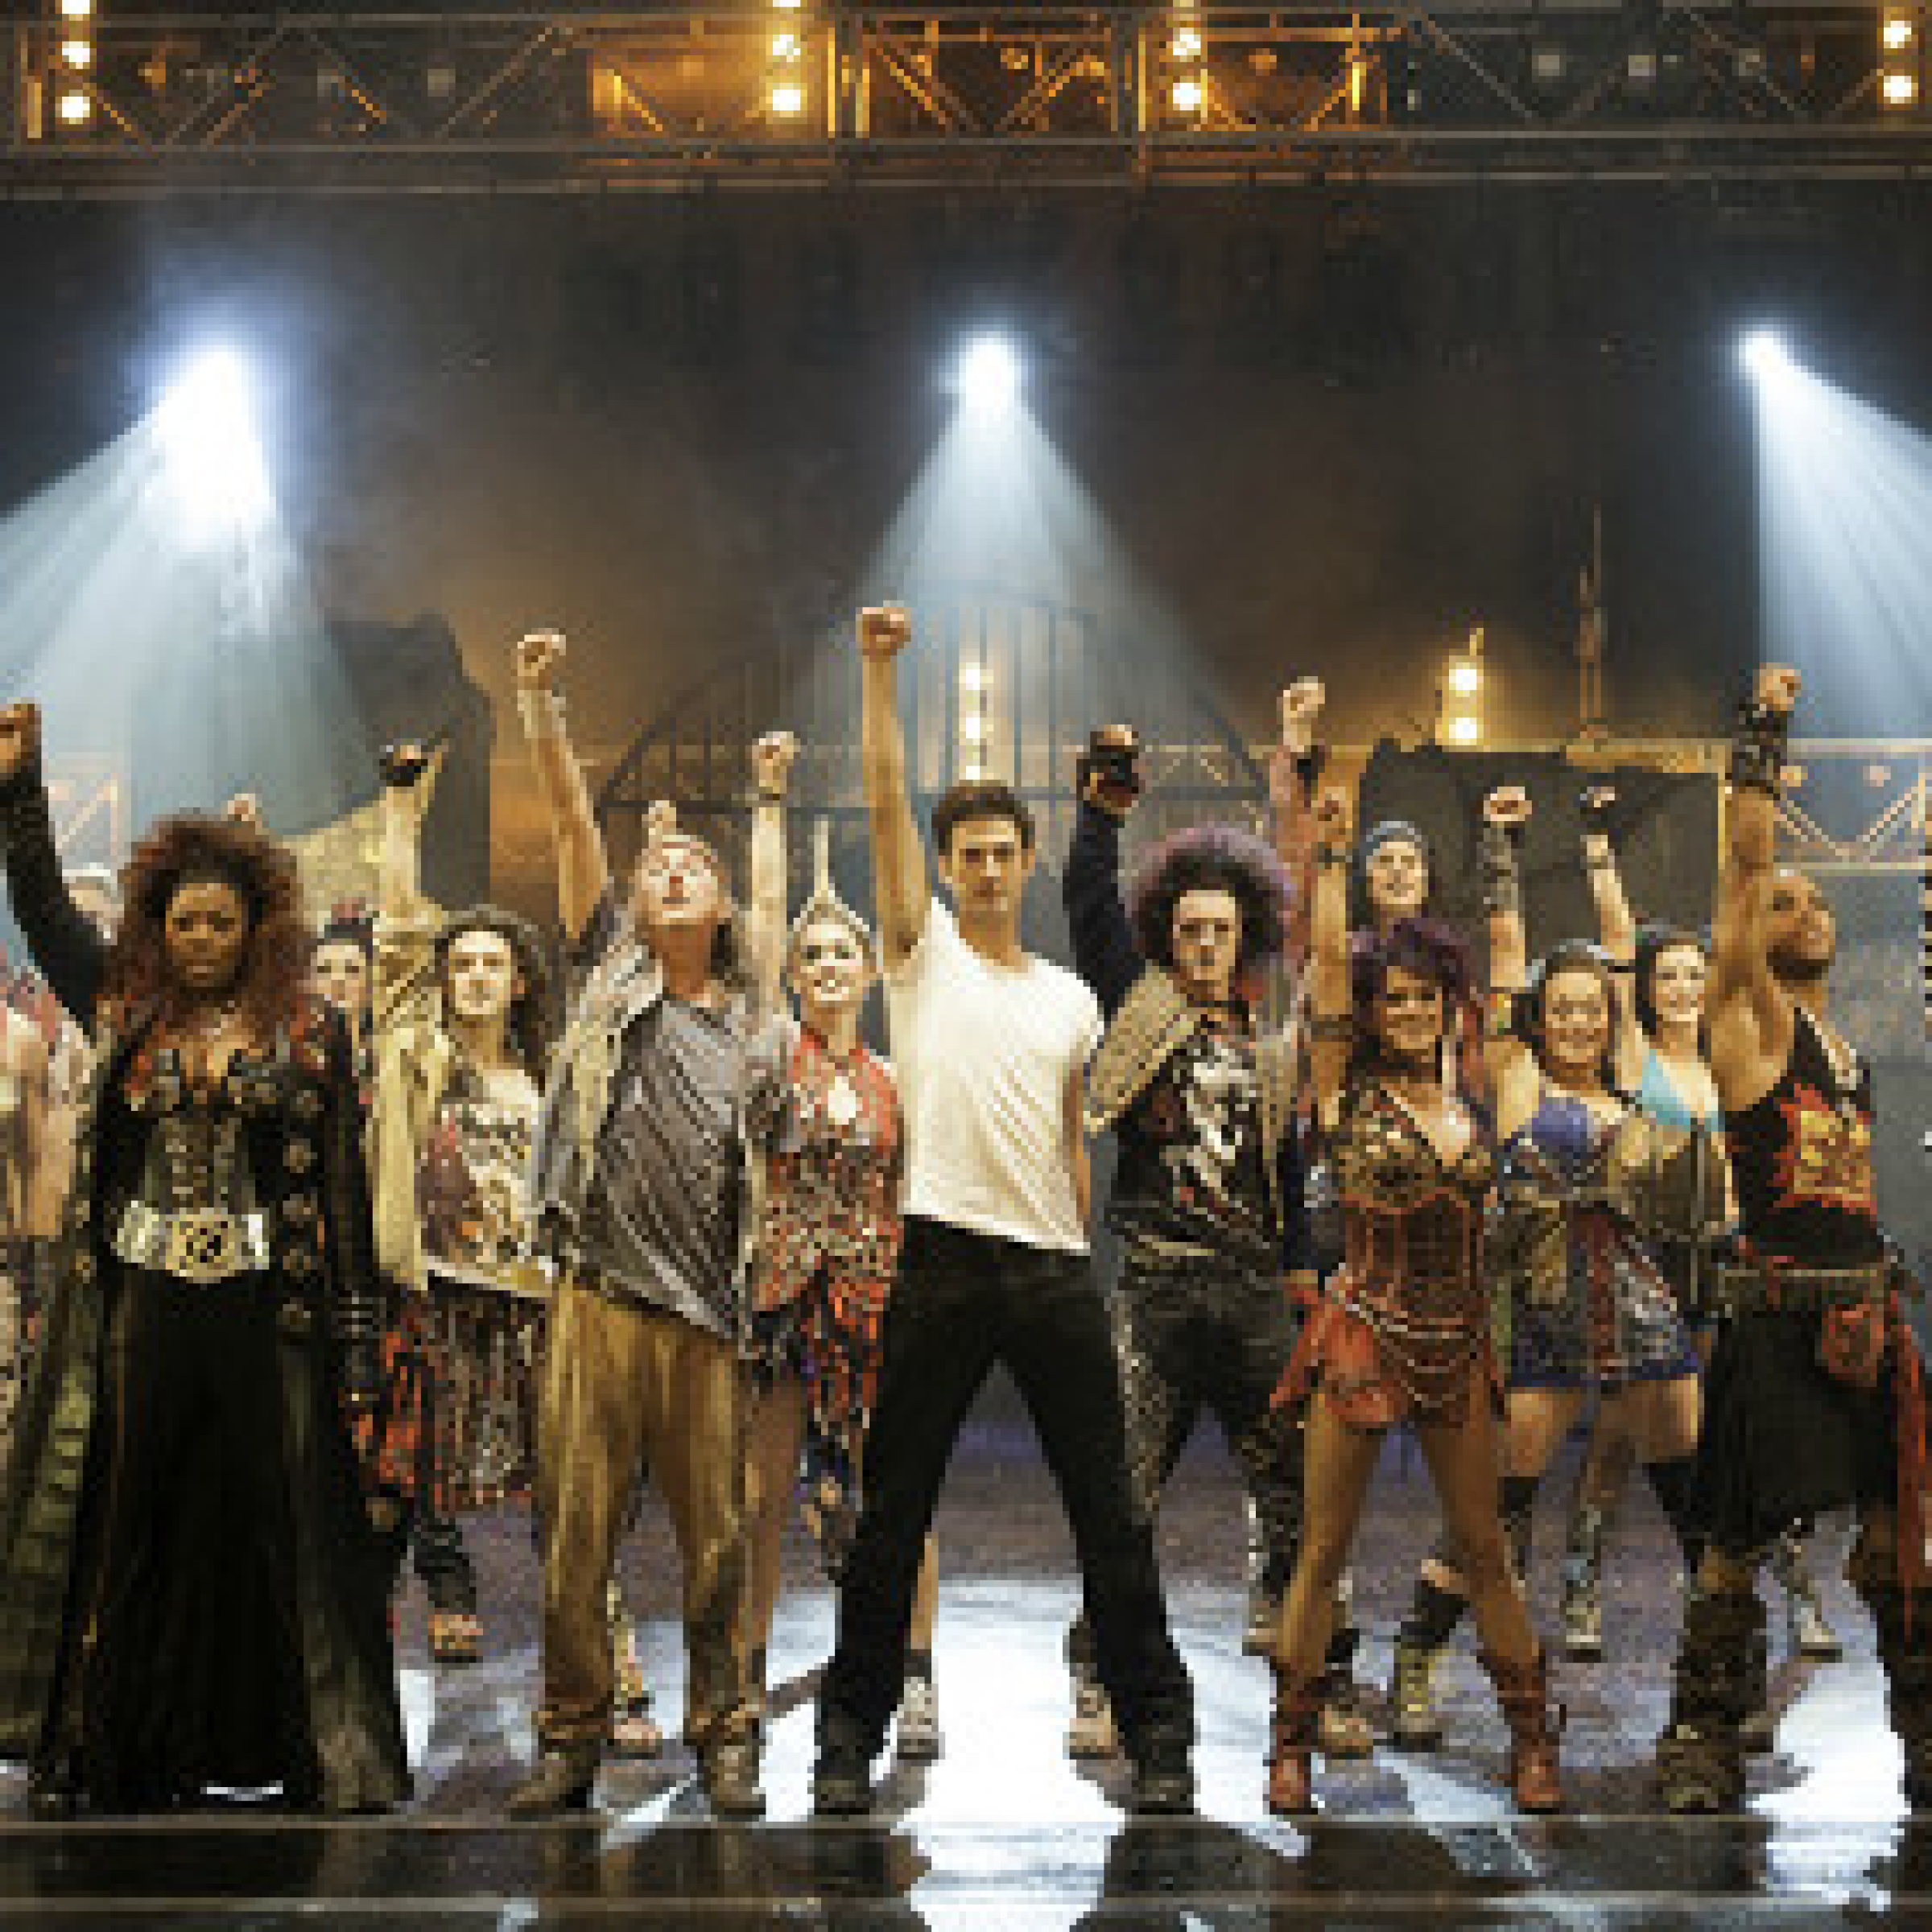 We Will Rock You closes at Dominion on 31 May 2014 after 12